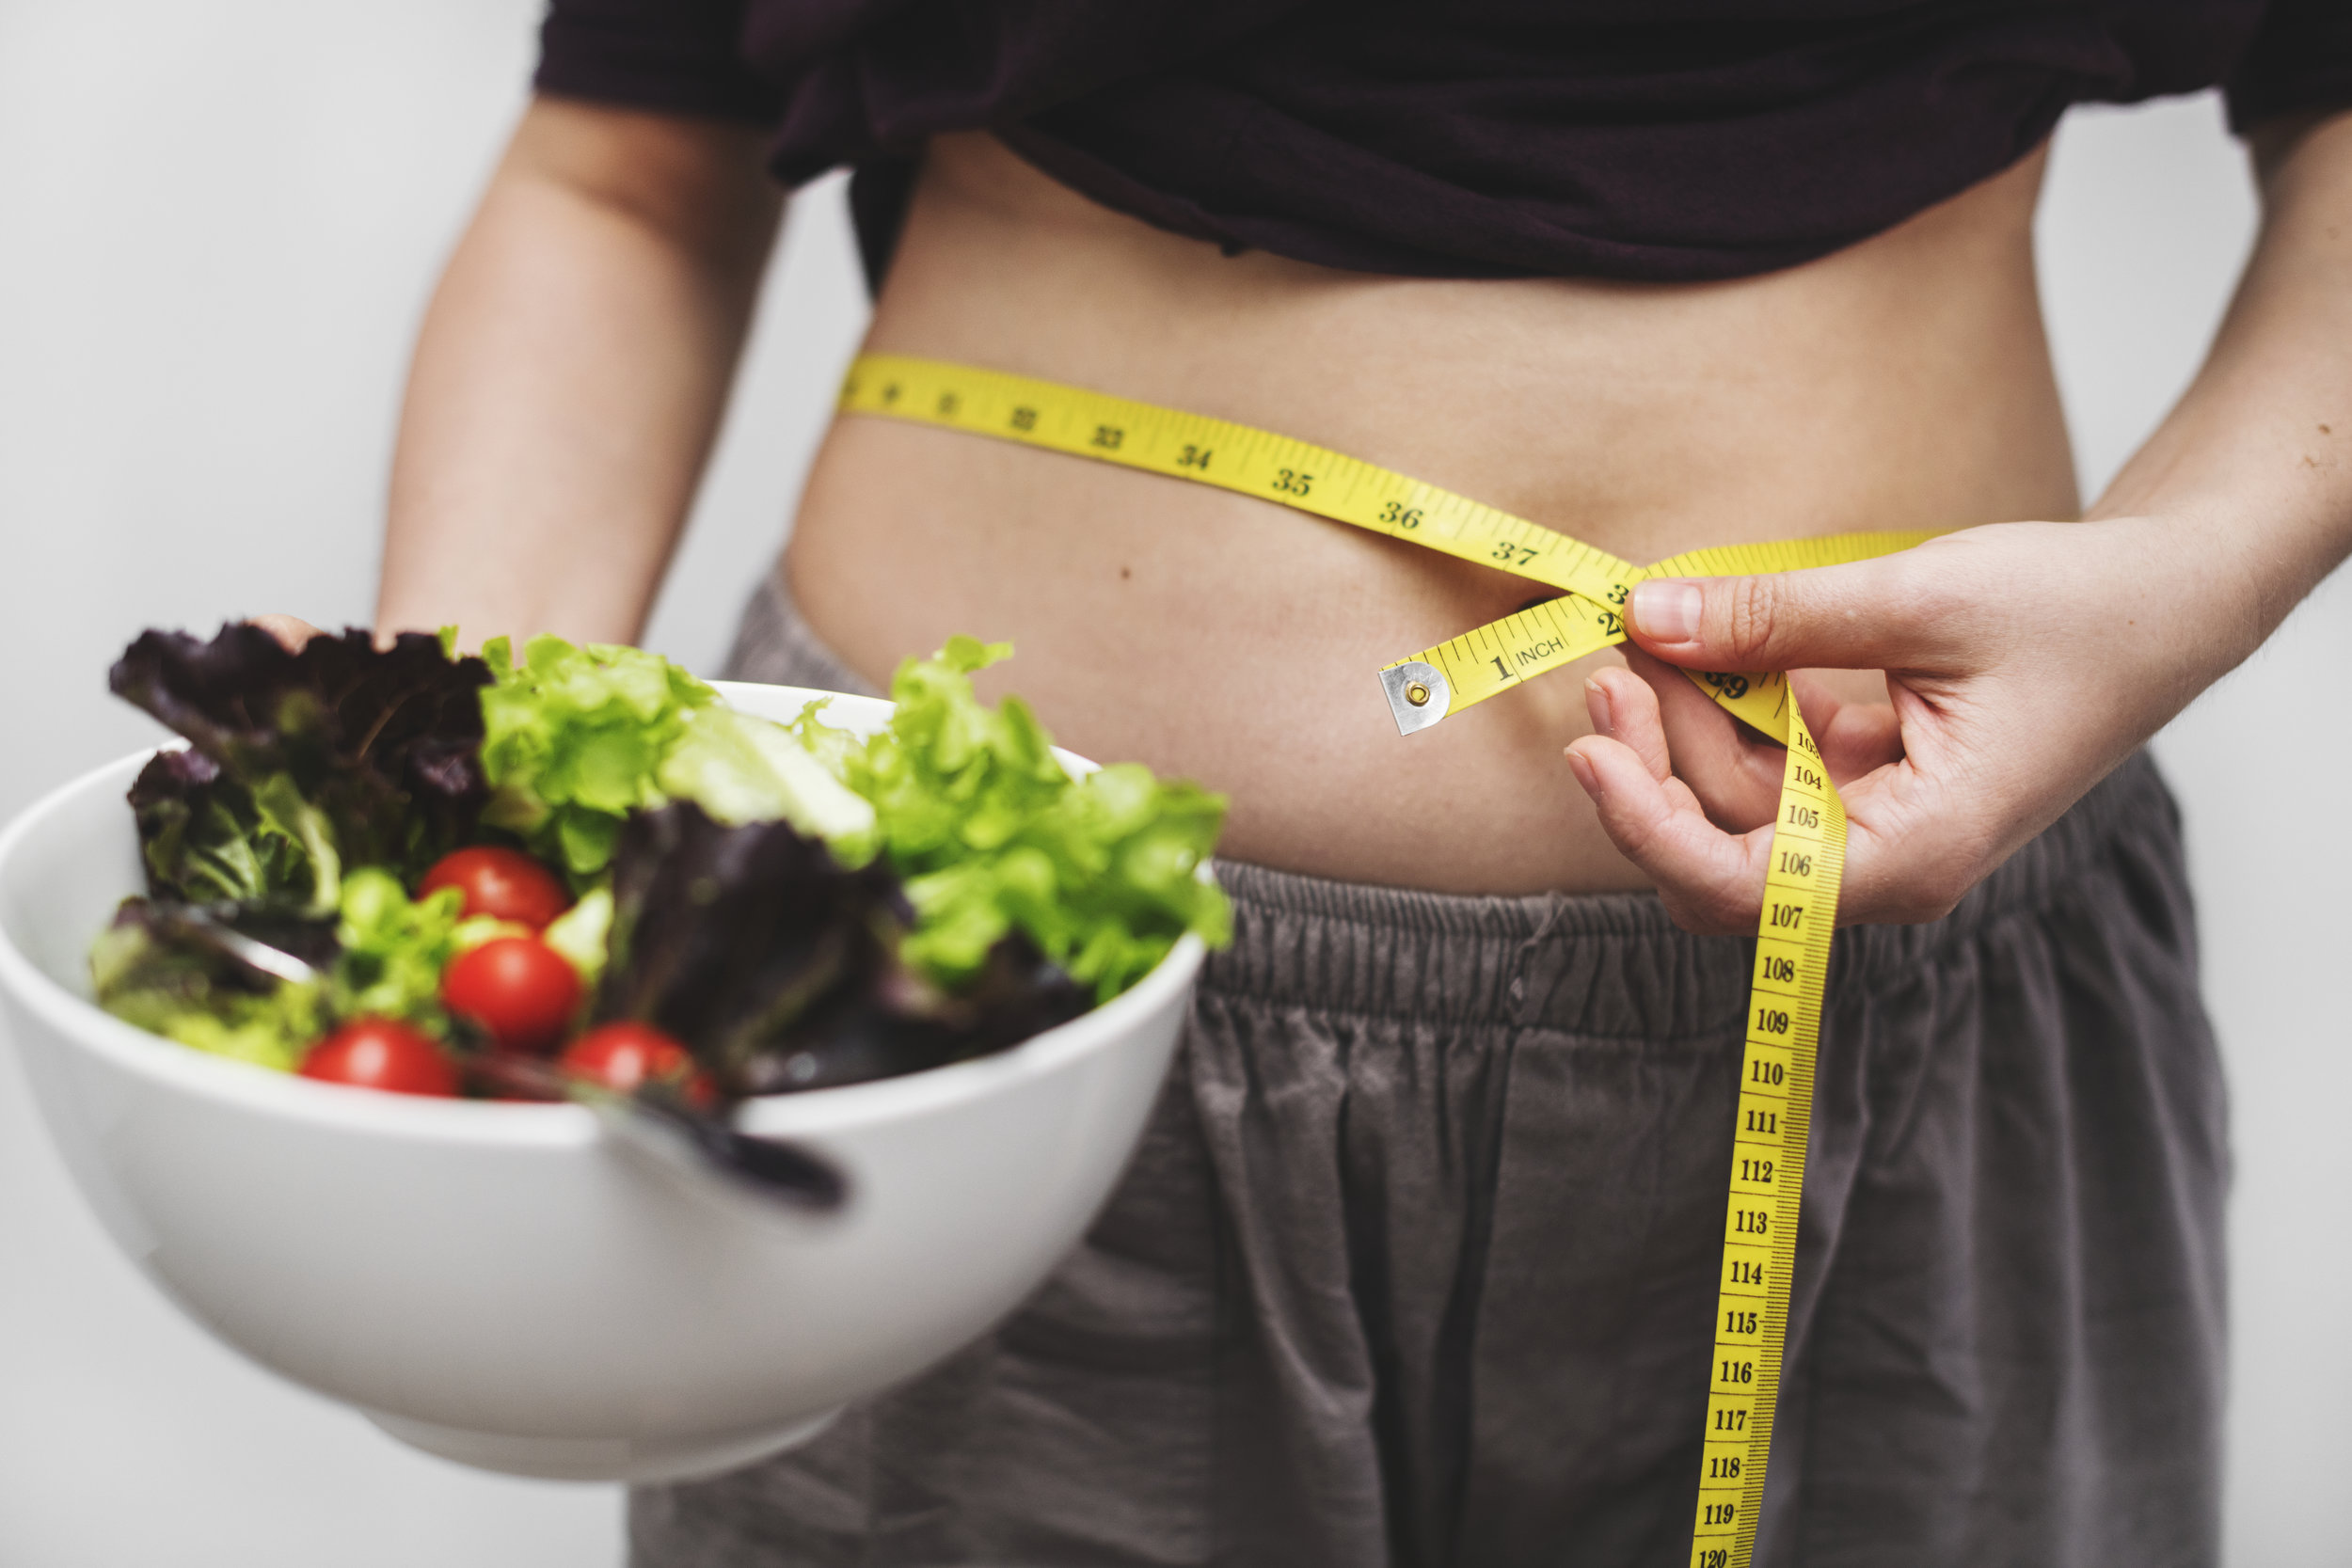 Woman-measuring-her-tummy-and-weight.jpg